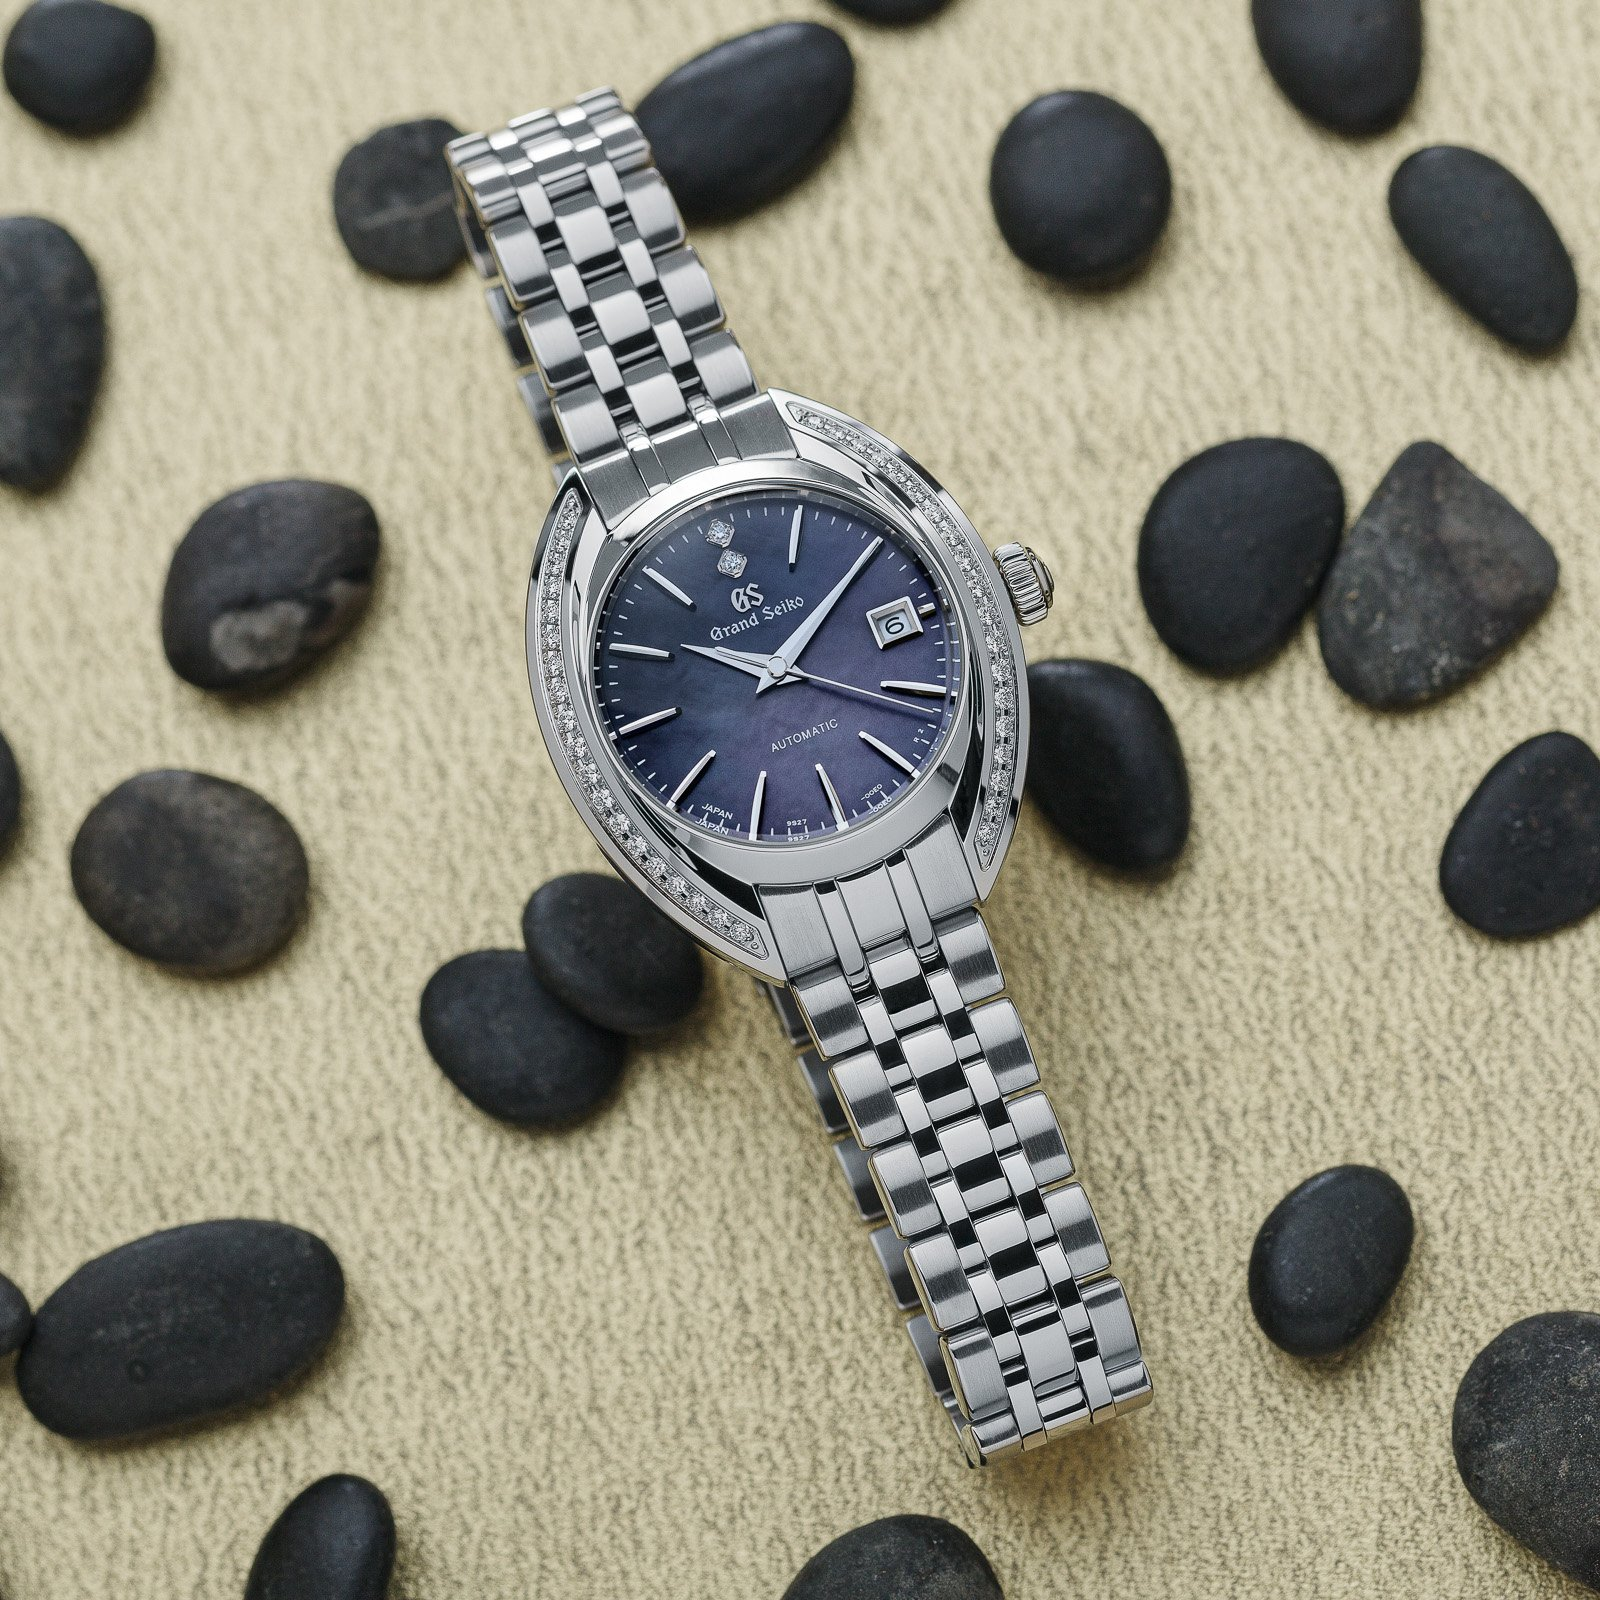 Grand Seiko wristwatch STGK013 - stainless steel case with diamonds and a dark textured dial.